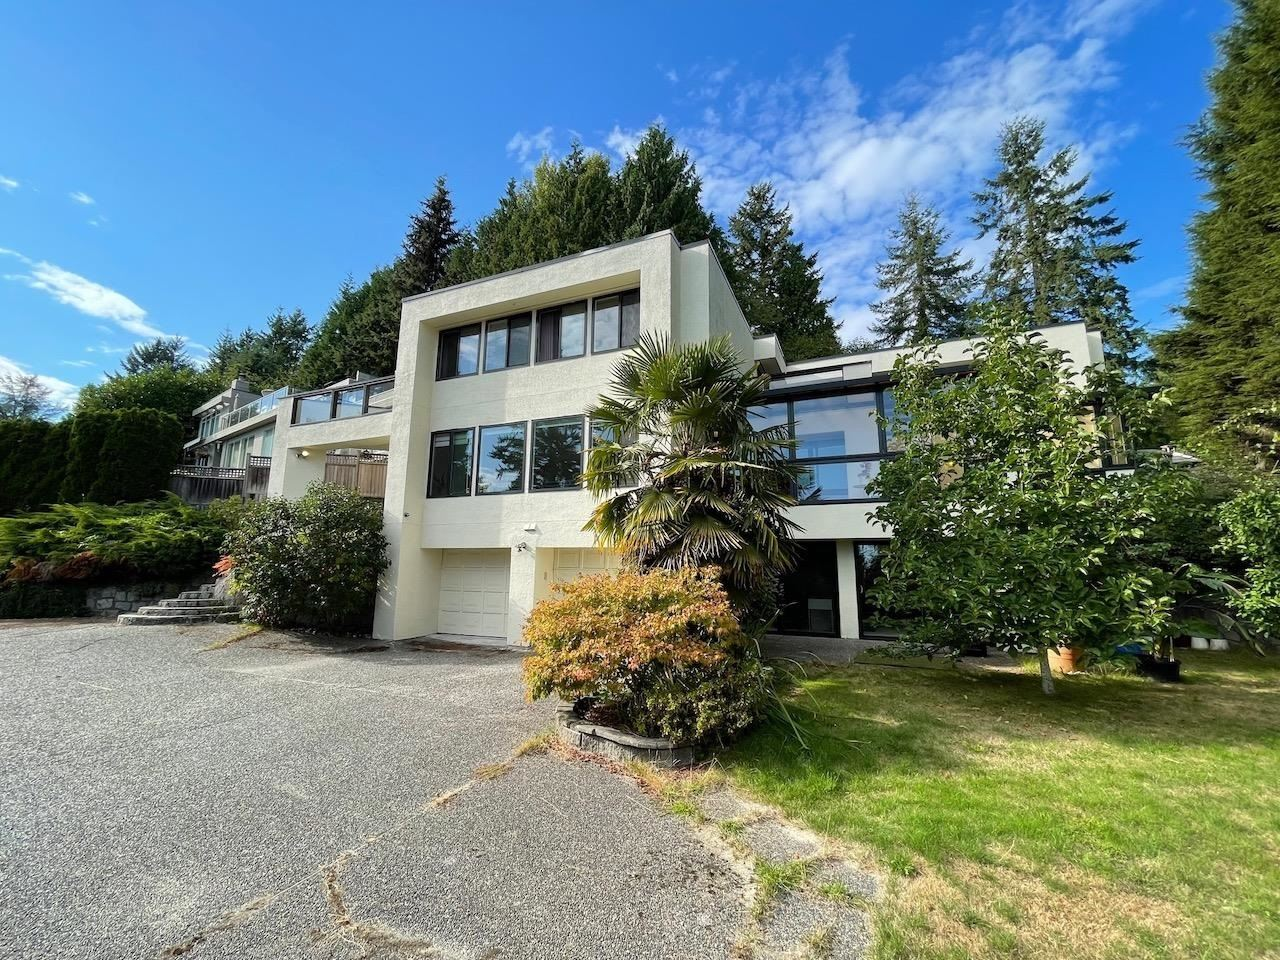 Photo for 2149 SHAFTON PLACE, West Vancouver, BC V7V 3B2 (MLS # R2612642)